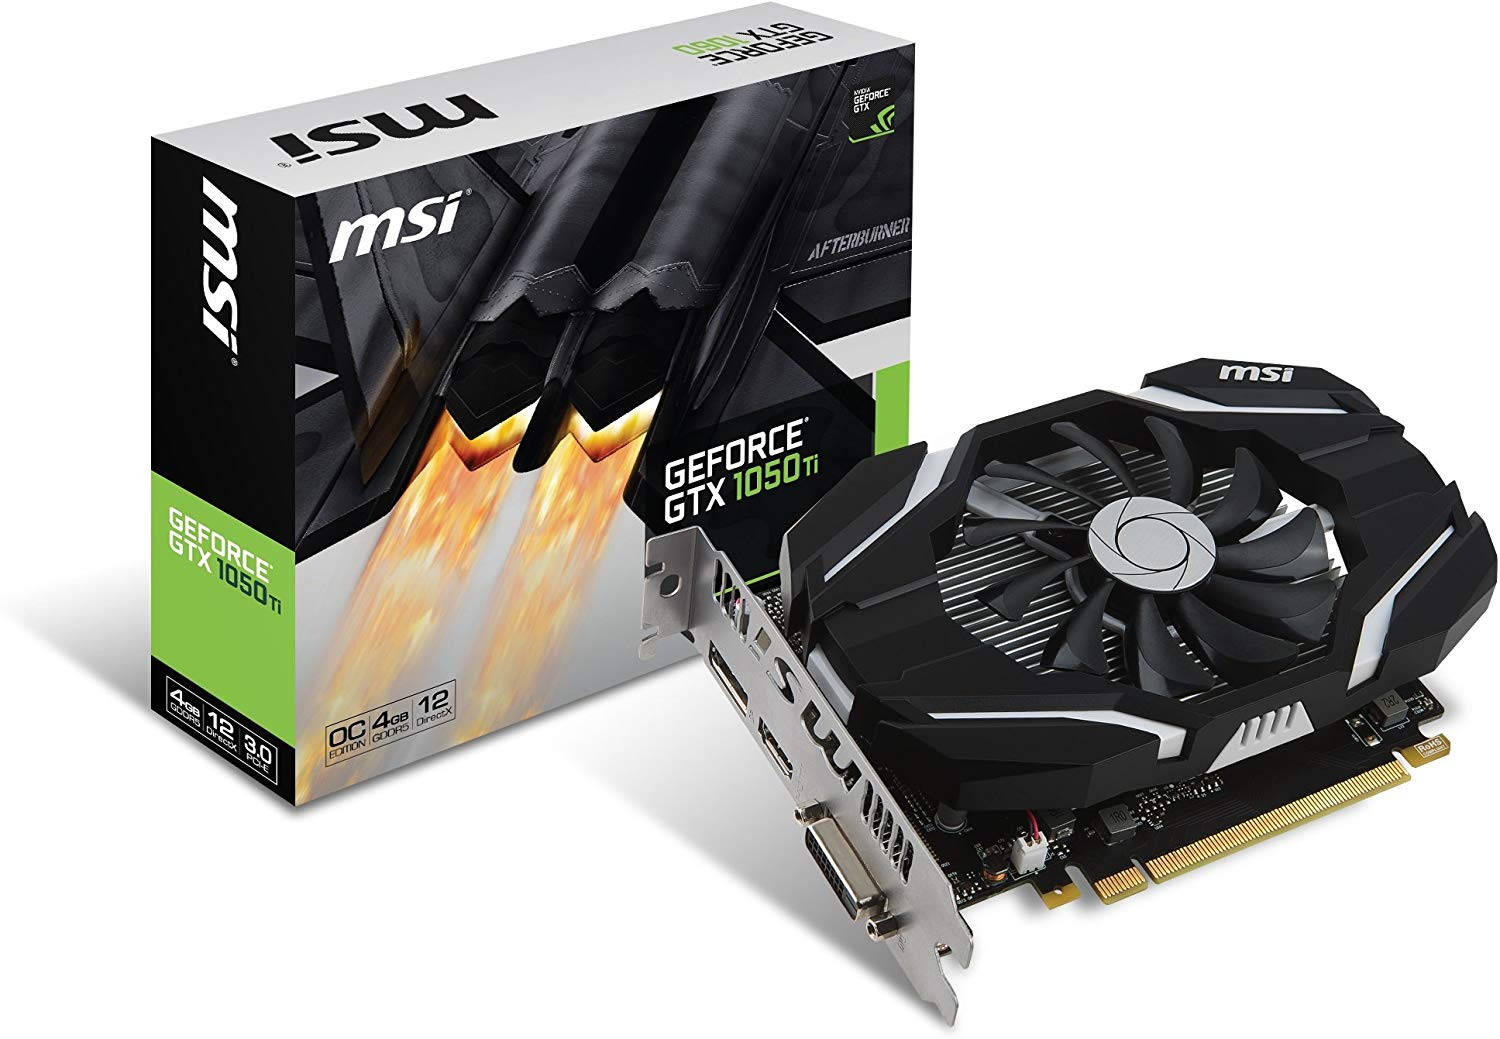 MSI GTX 1050Ti 4GB PCI-e Graphics Card